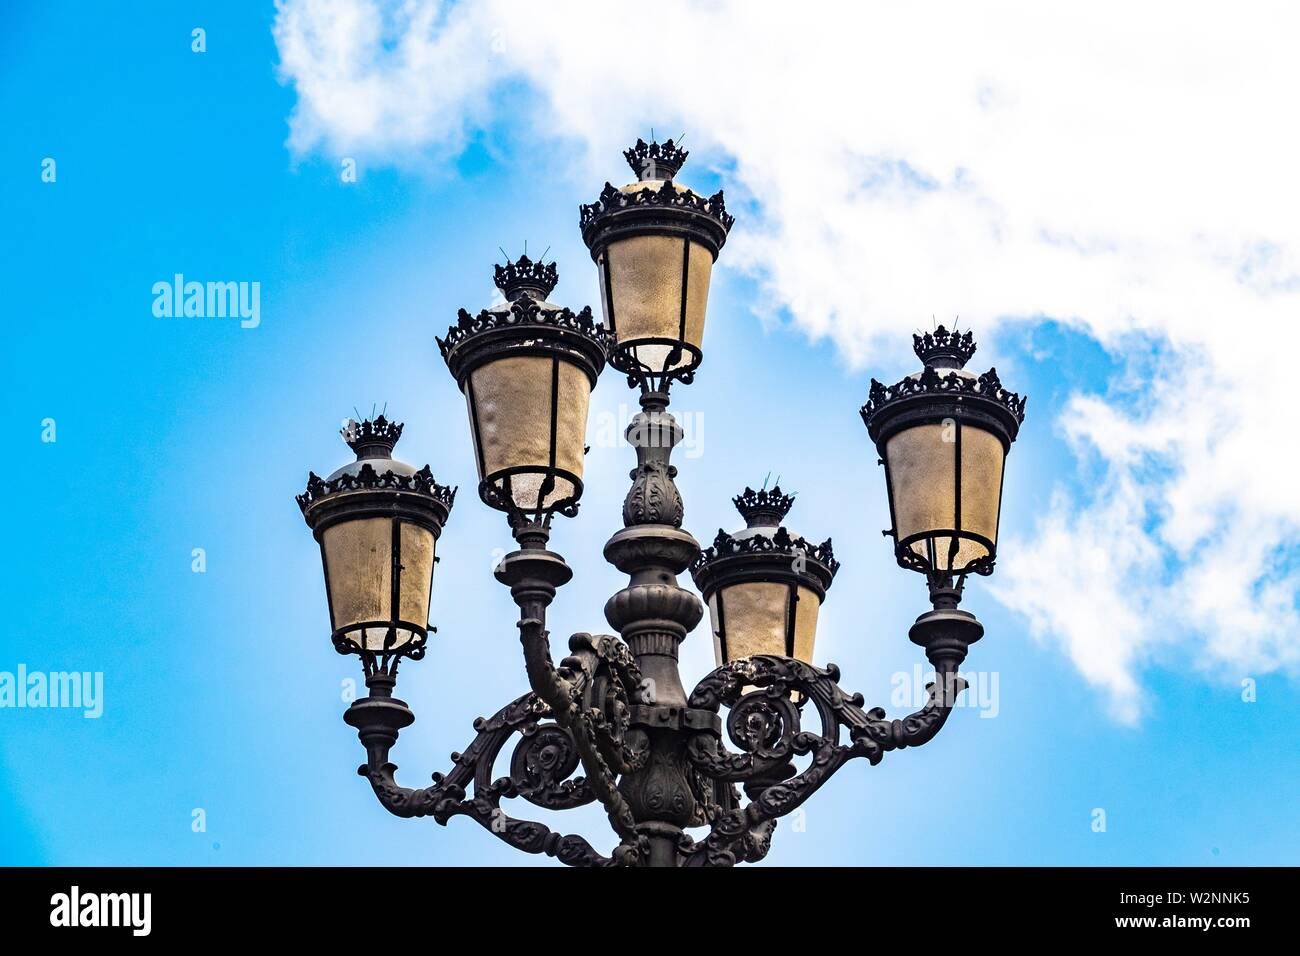 Old lamp post at Plaza de San Francisco, Triana quarter, Las Palmas de Gran Canaria, Canary Islands. Stock Photo